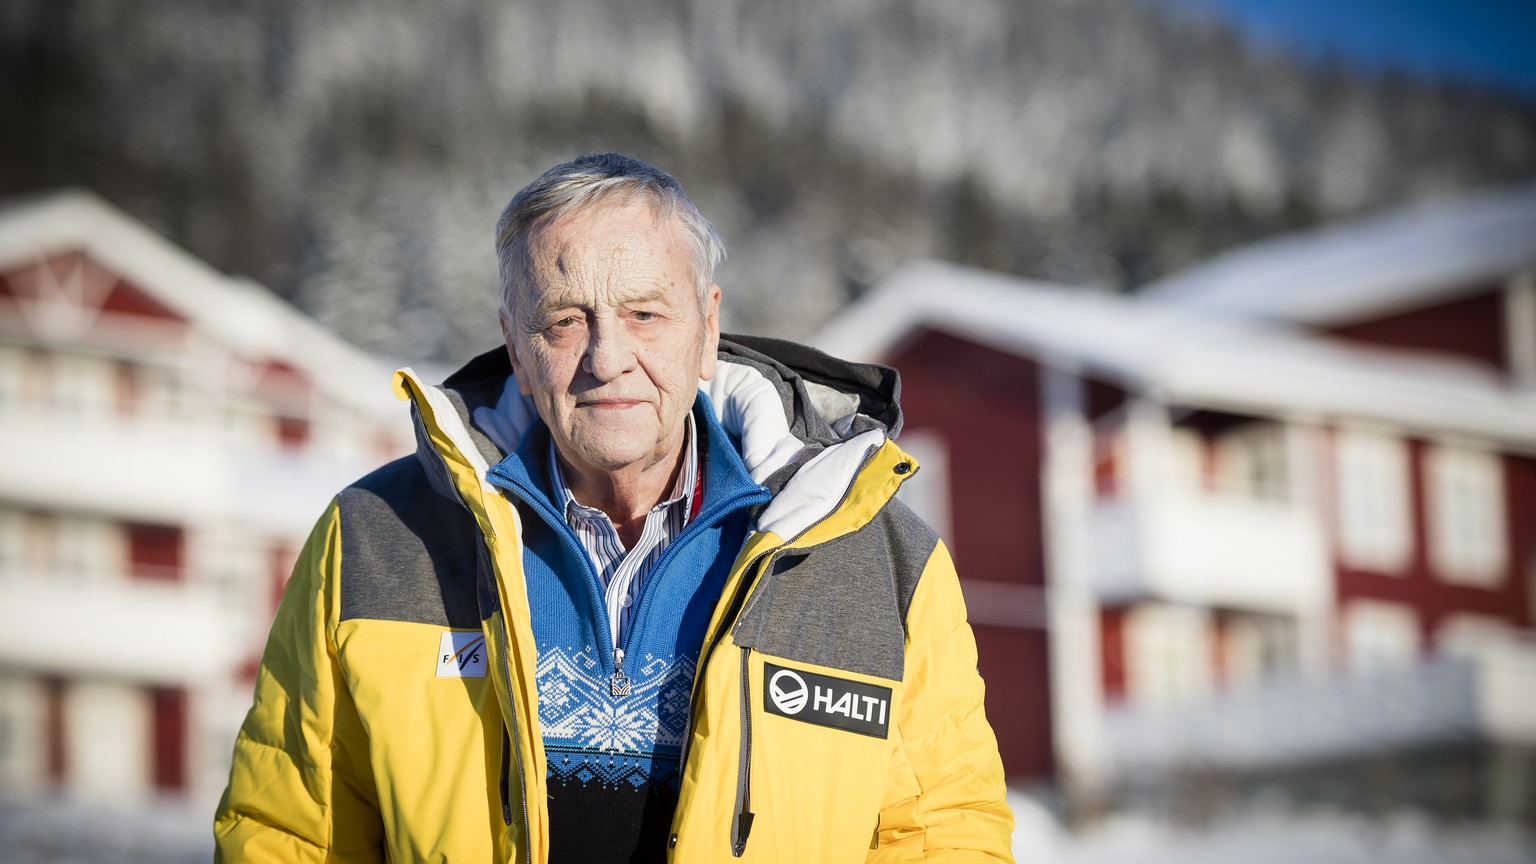 Gian-Franco Kasper, president of the FIS, poses during a press conference at the 2019 FIS Alpine Skiing World Championships in Are, Sweden Monday, February 4, 2019. (KEYSTONE/Jean-Christophe Bott)